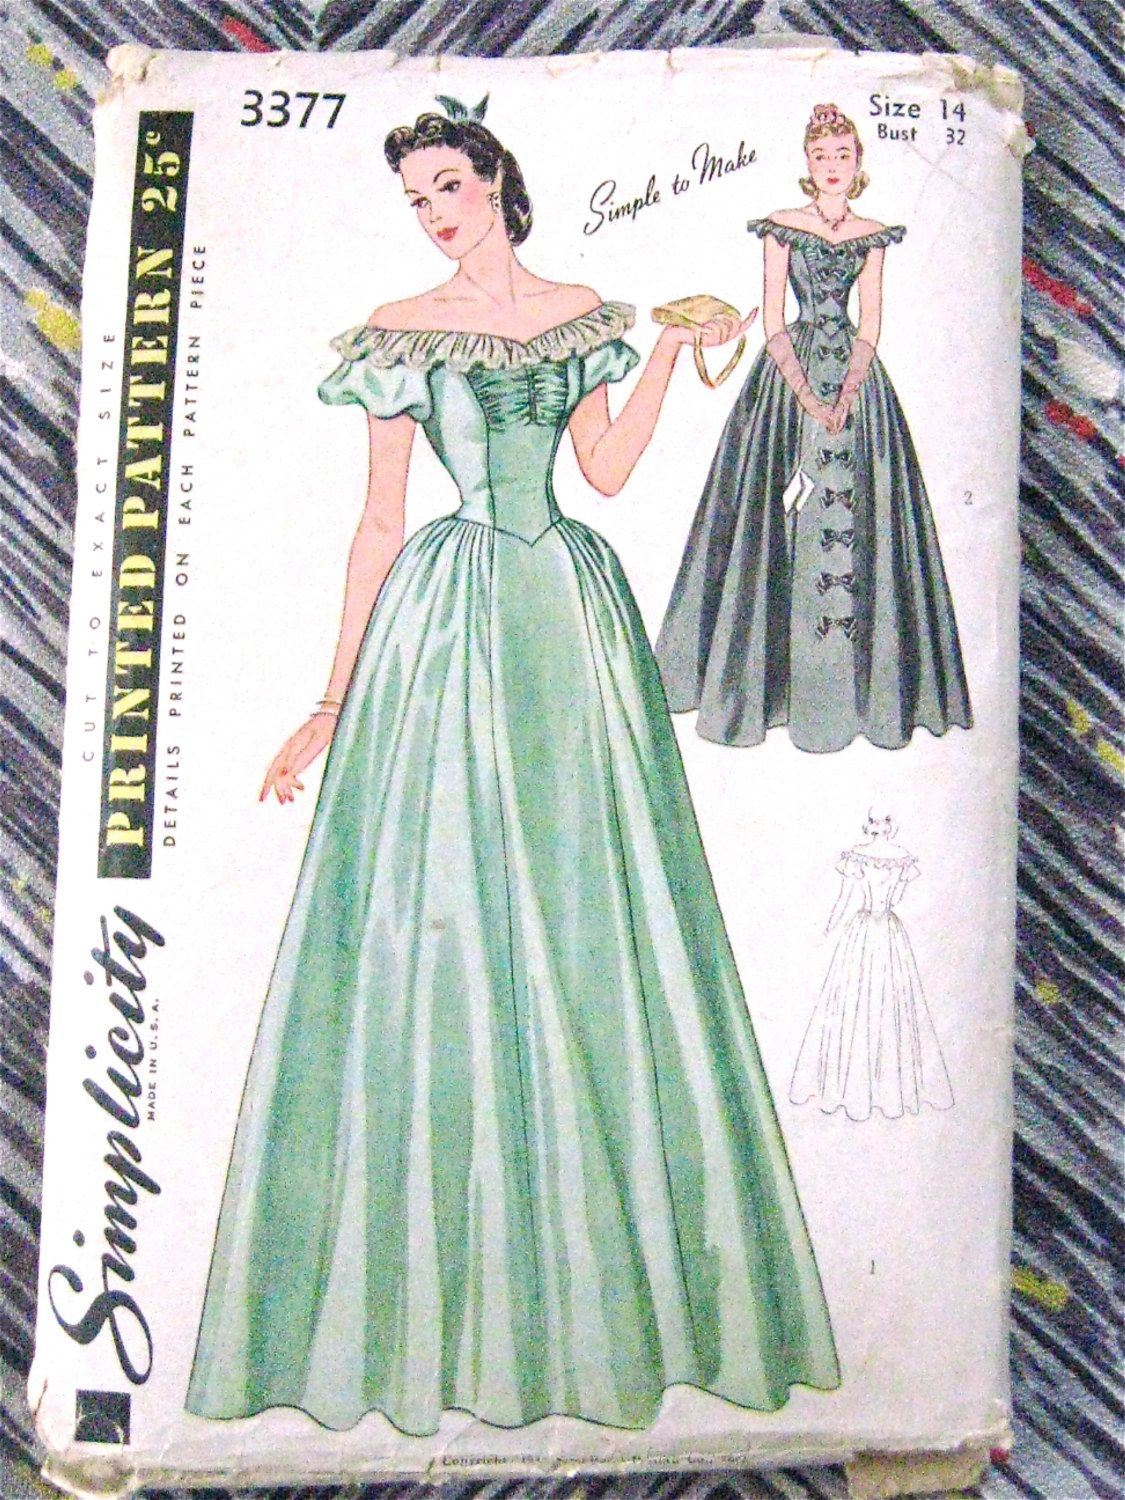 Simplicity 3377 (1940) | Vintage Sewing Patterns Community Board ...